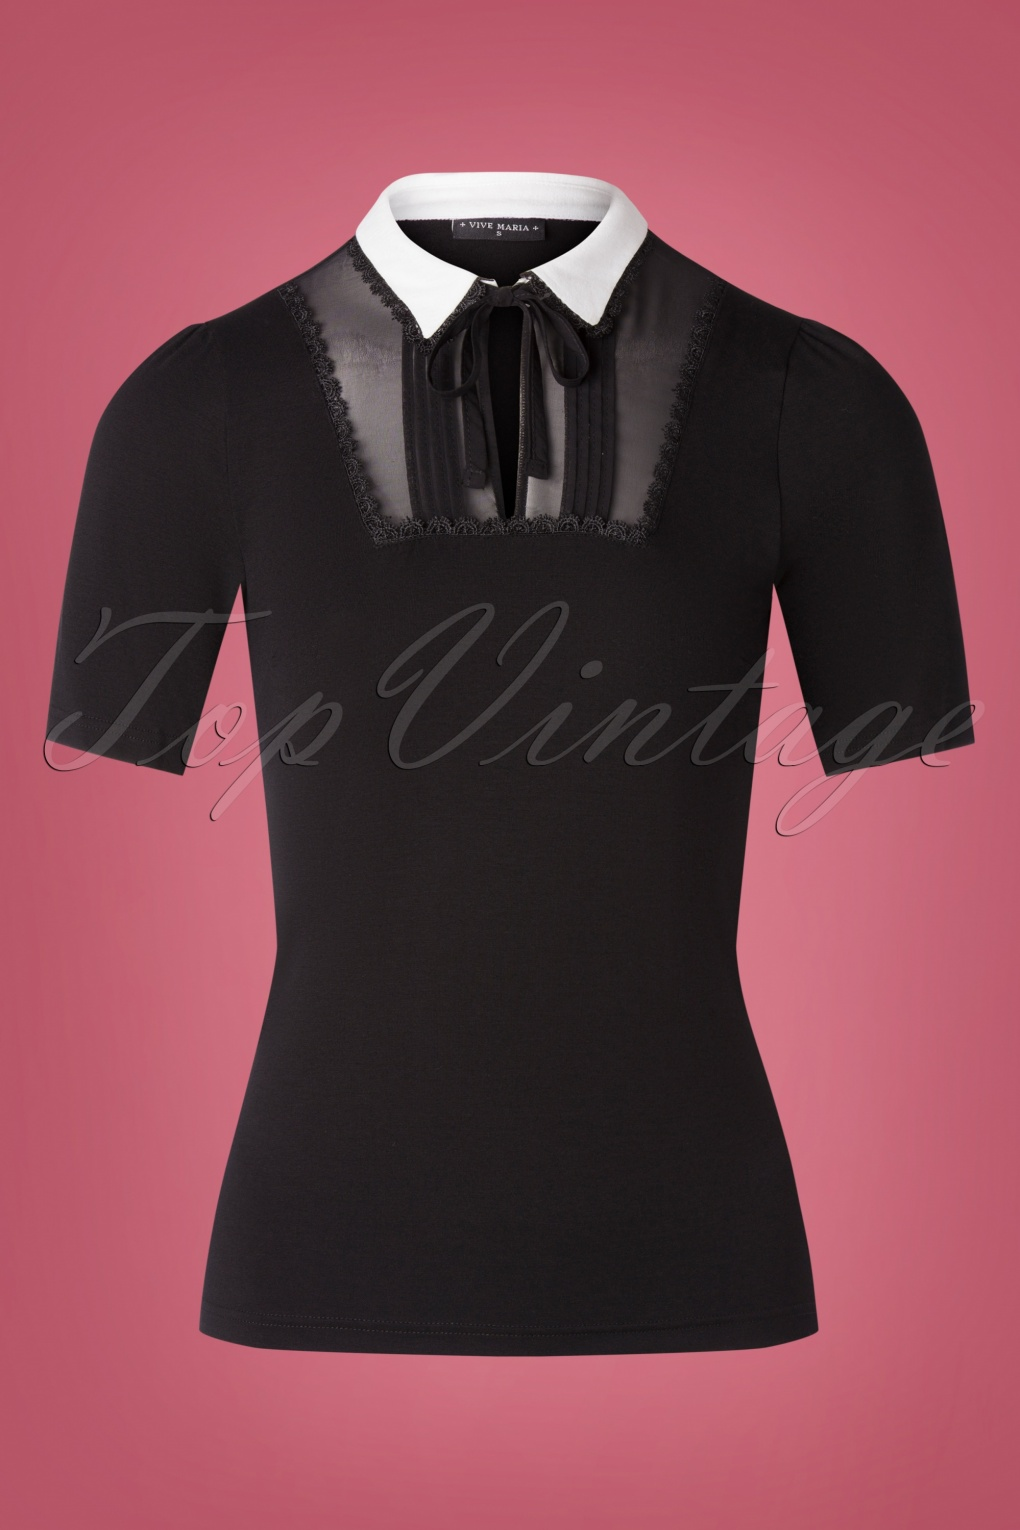 1960s Style Dresses, Clothing, Shoes UK 60s French Chic Shirt in Black £49.22 AT vintagedancer.com